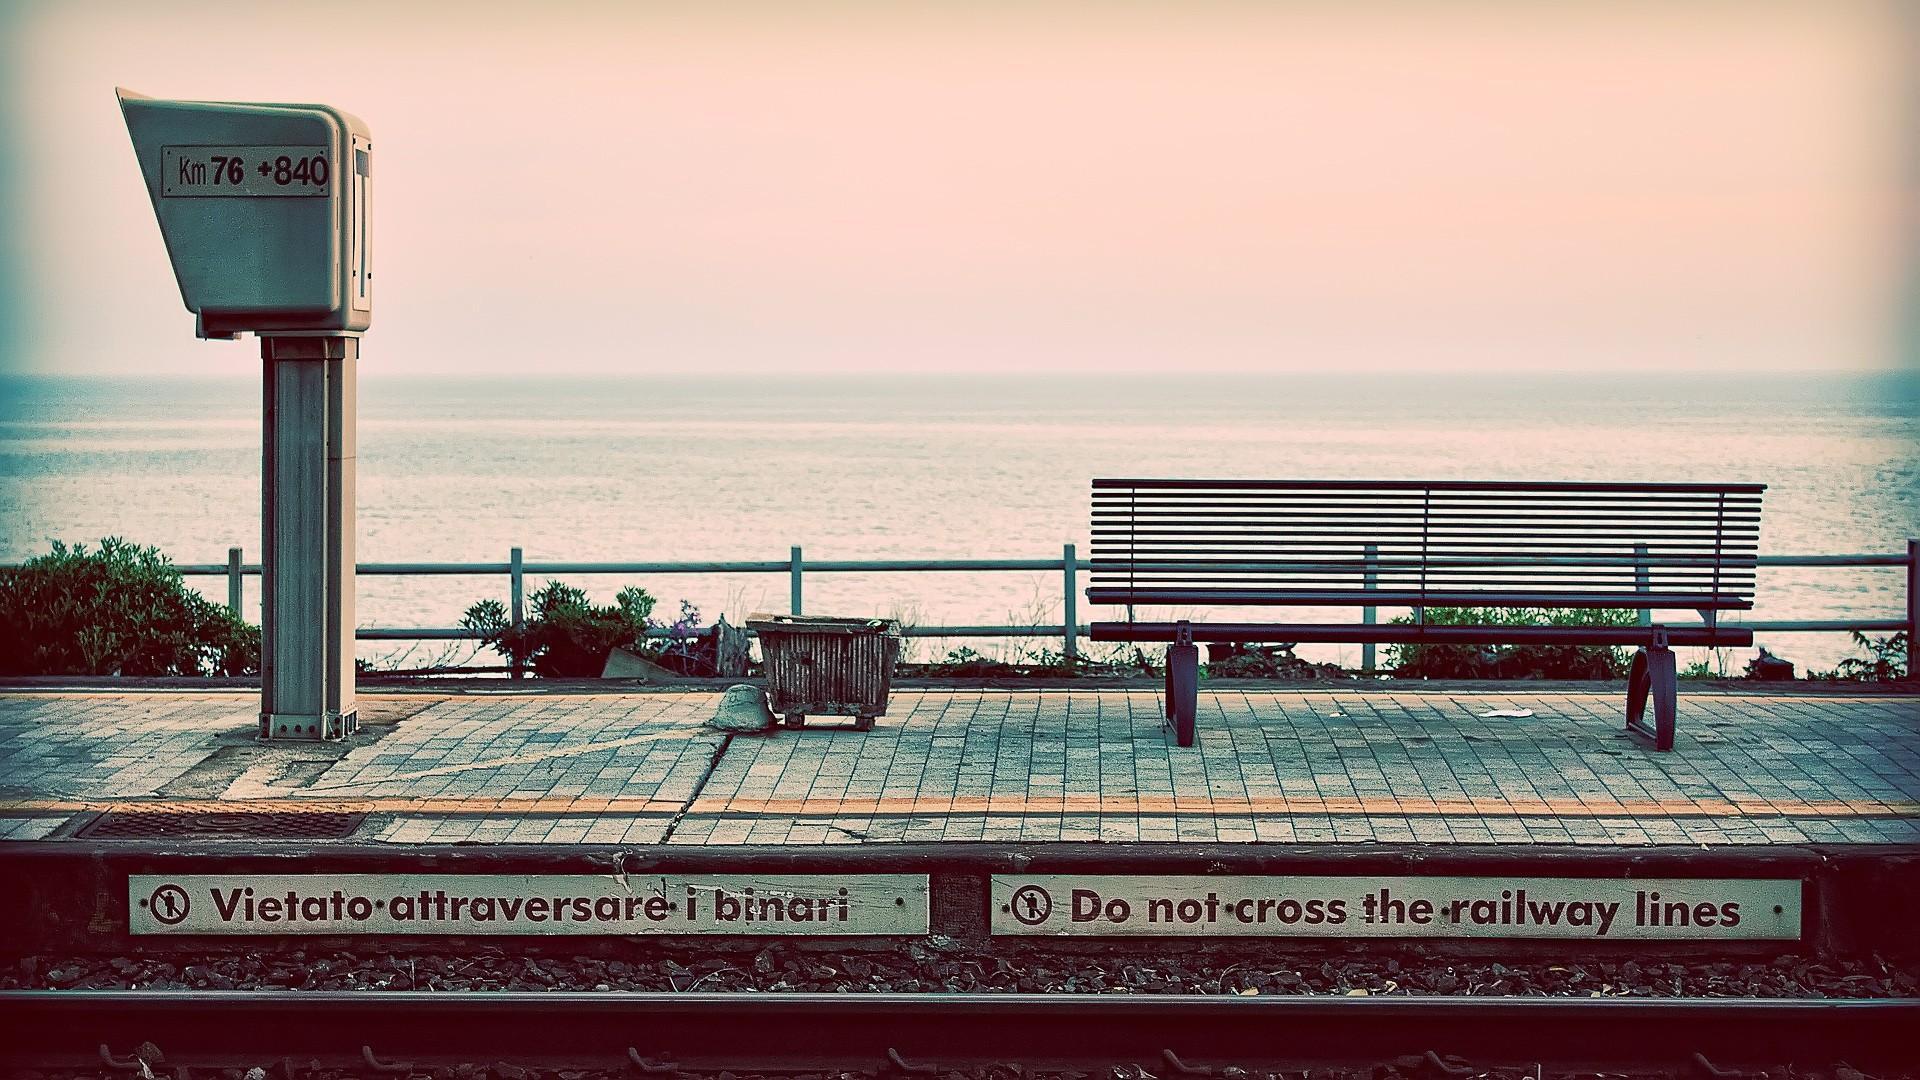 General 1920x1080 photography nature landscape water sea train station